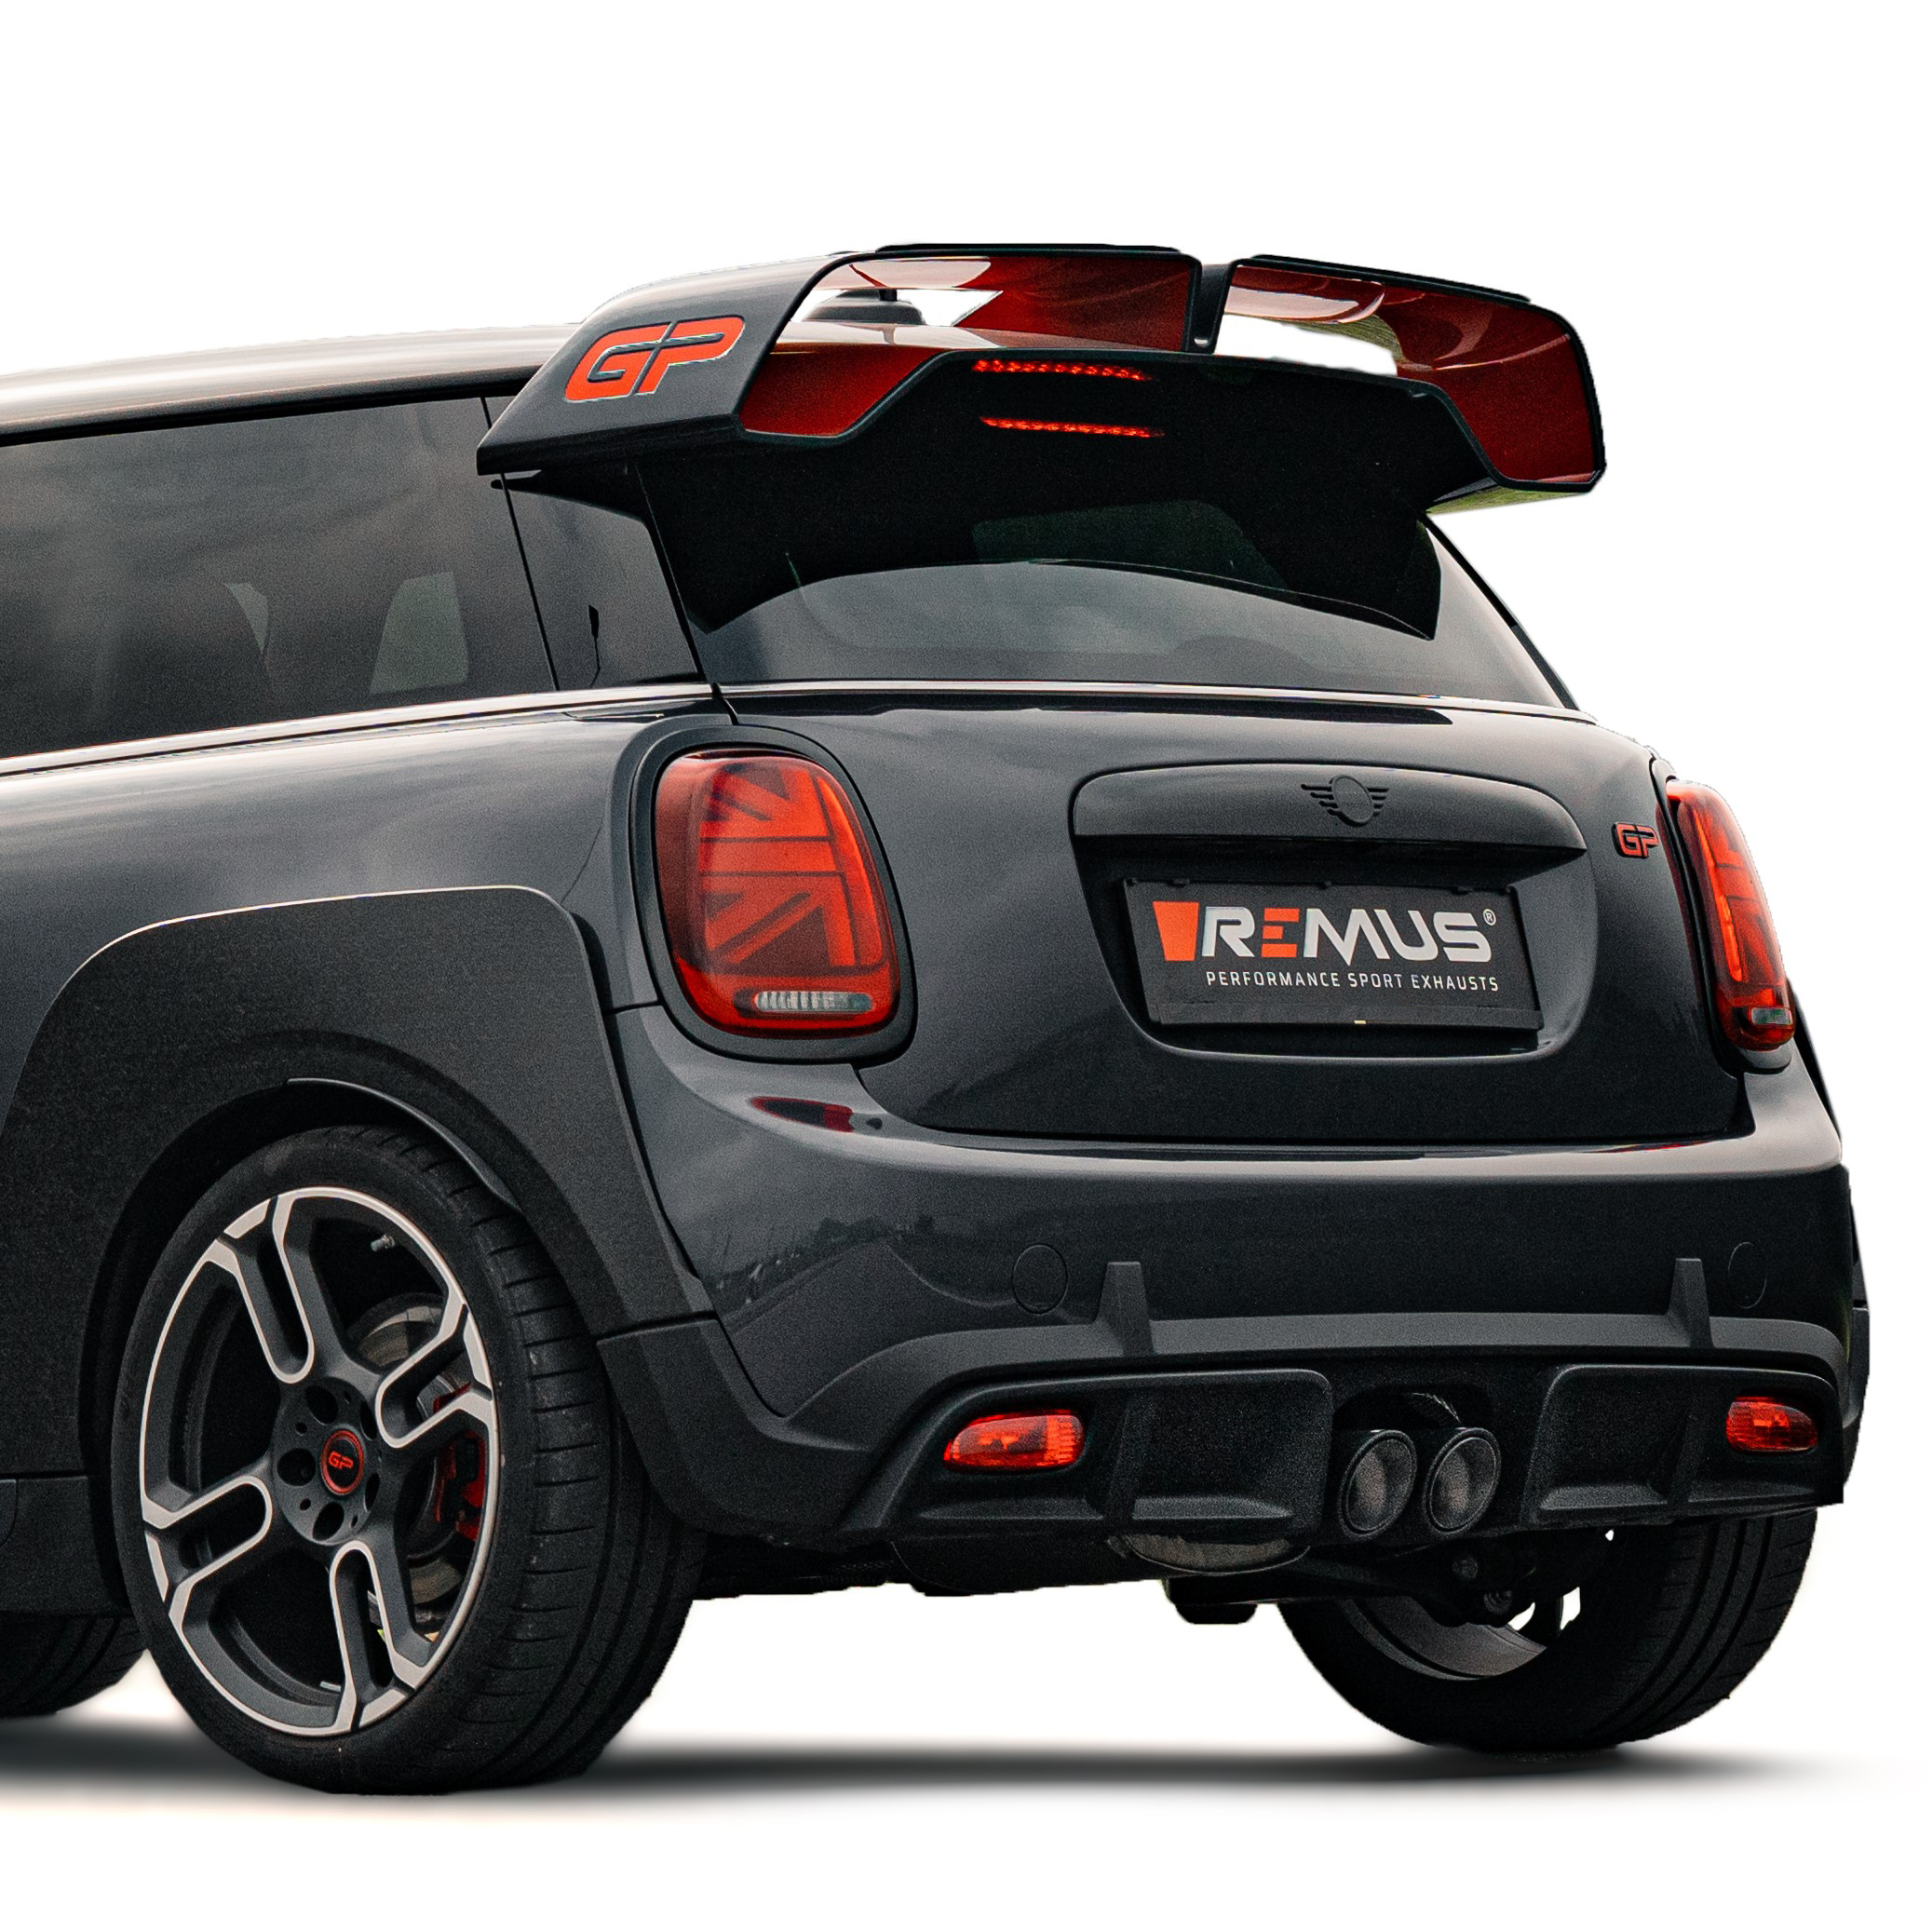 NEW DEVELOPMENT 2021| #02 MINI JCW GP F56 PERFORMANCE EXHAUST SYSTEM